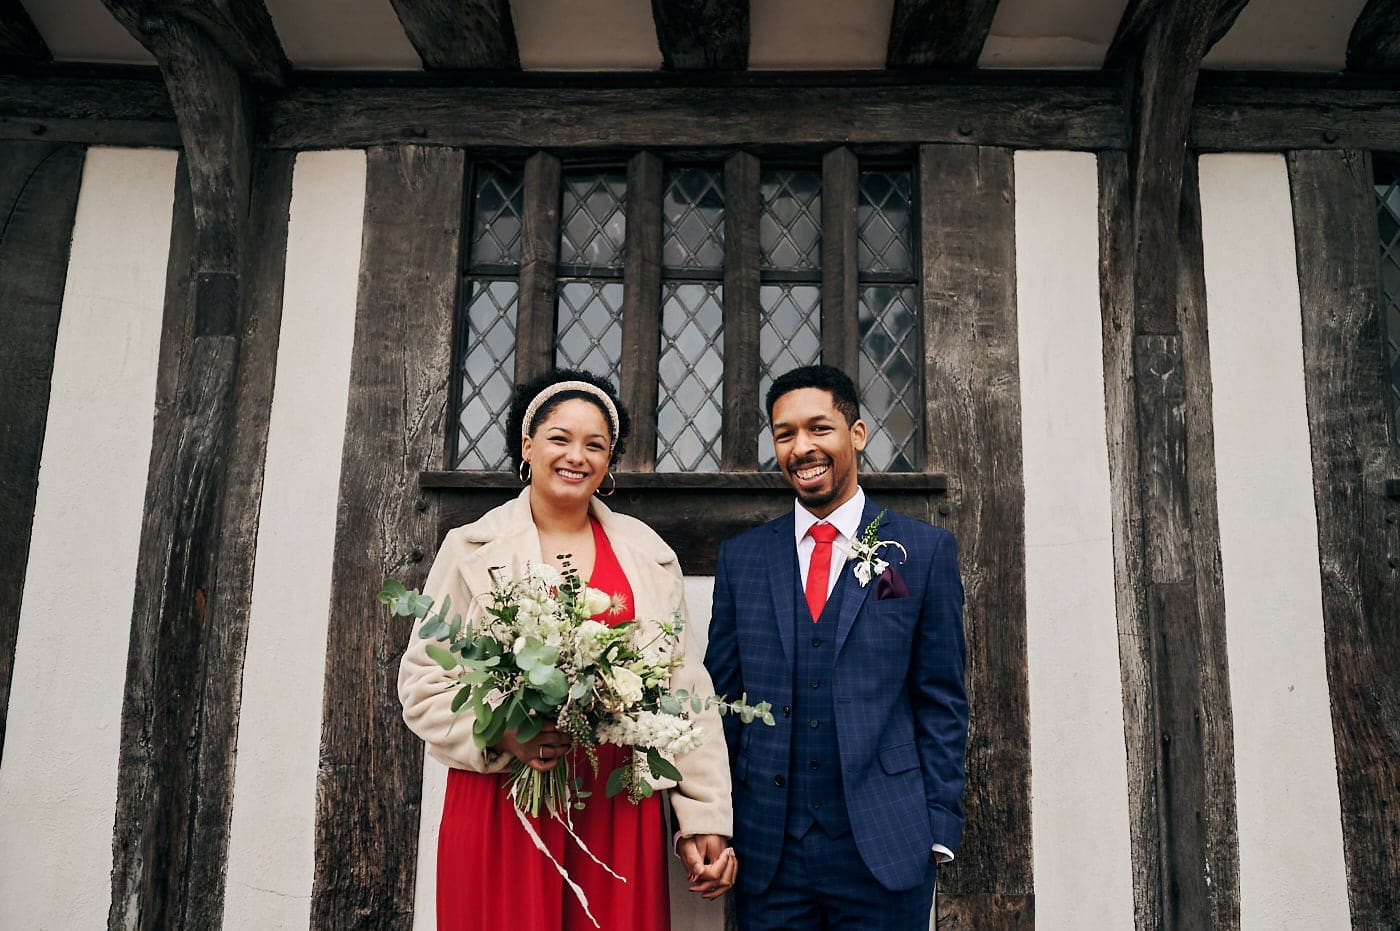 Bride and groom happy and smiling in front of old half-timber building in Stratford-upon-Avon